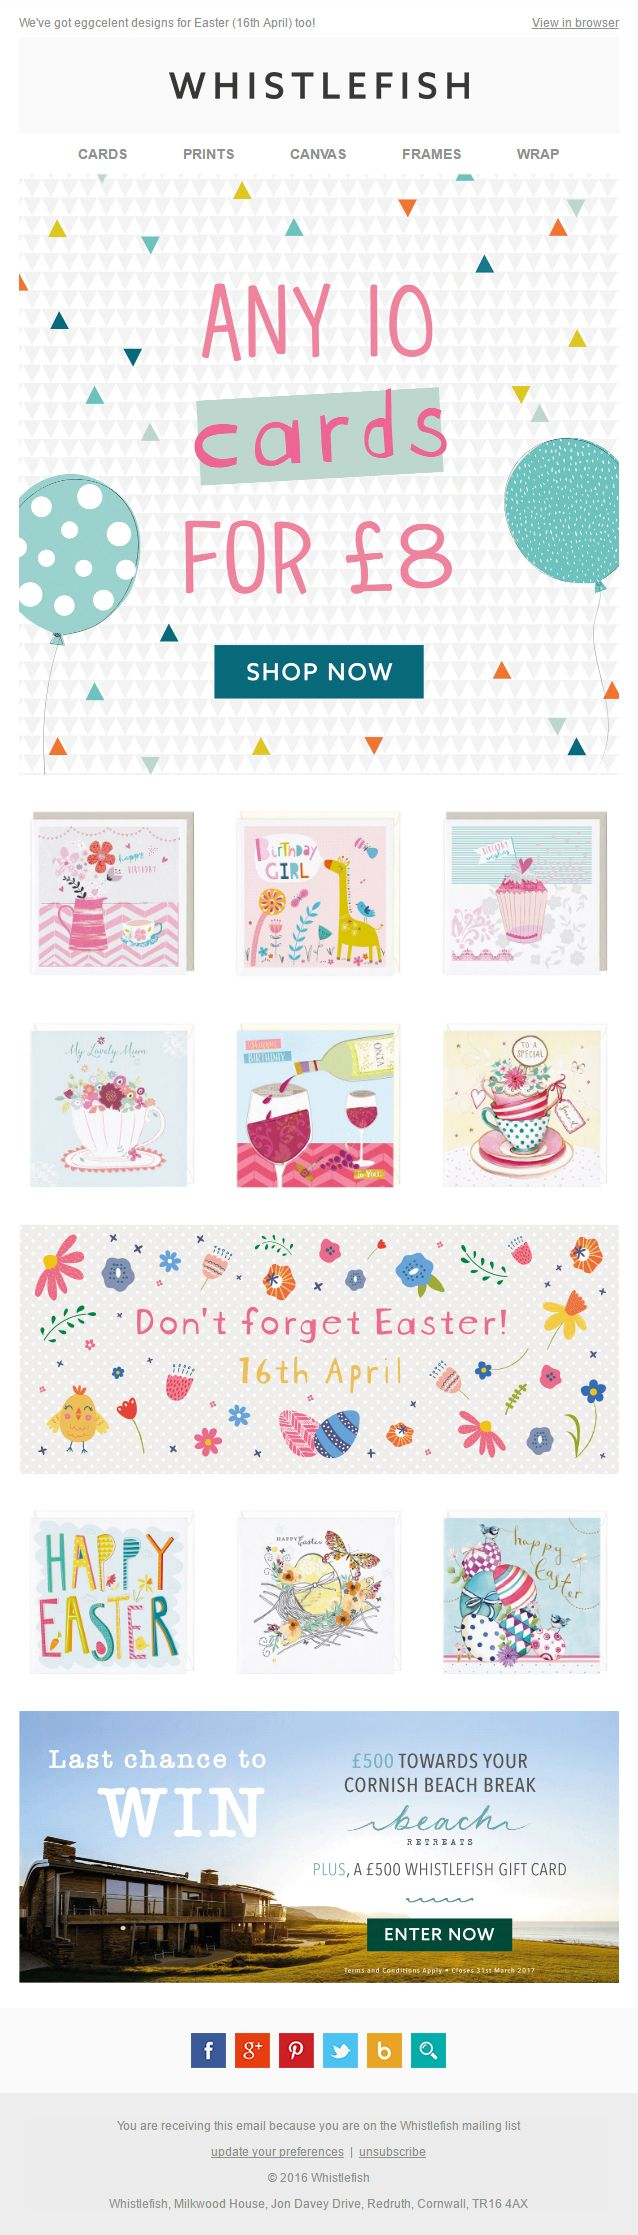 94 best easter emails images on pinterest email marketing easter email from whistlefish with offer emailmarketing email marketing easter cards negle